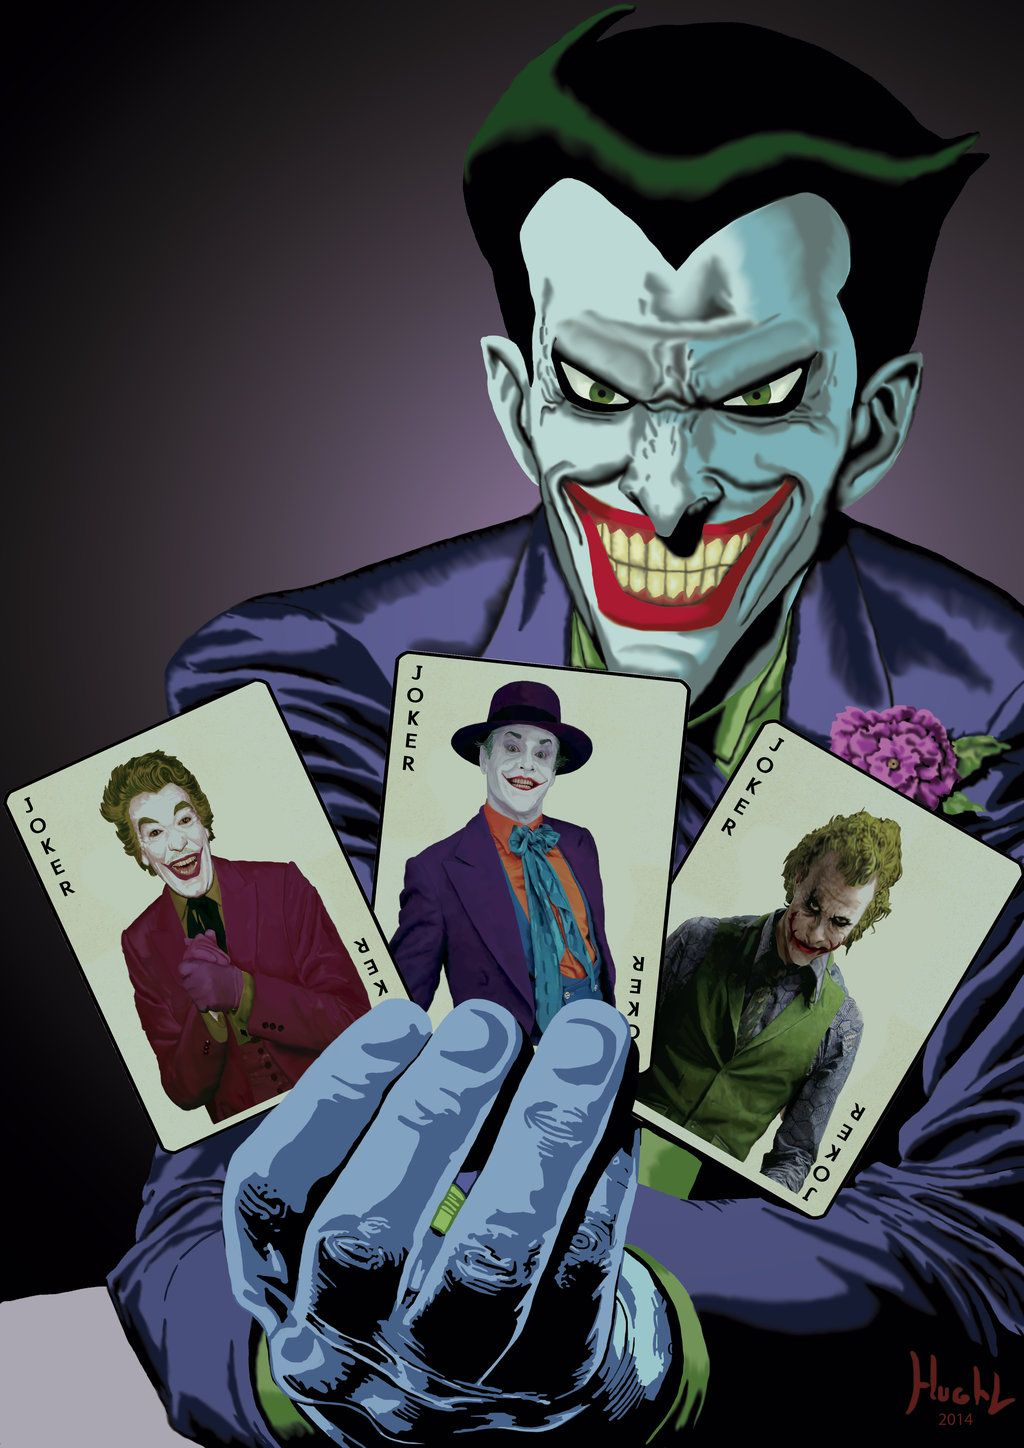 Joker batman the animated series with cardsby shinnh the joker joker batman the animated series with cardsby shinnh voltagebd Images